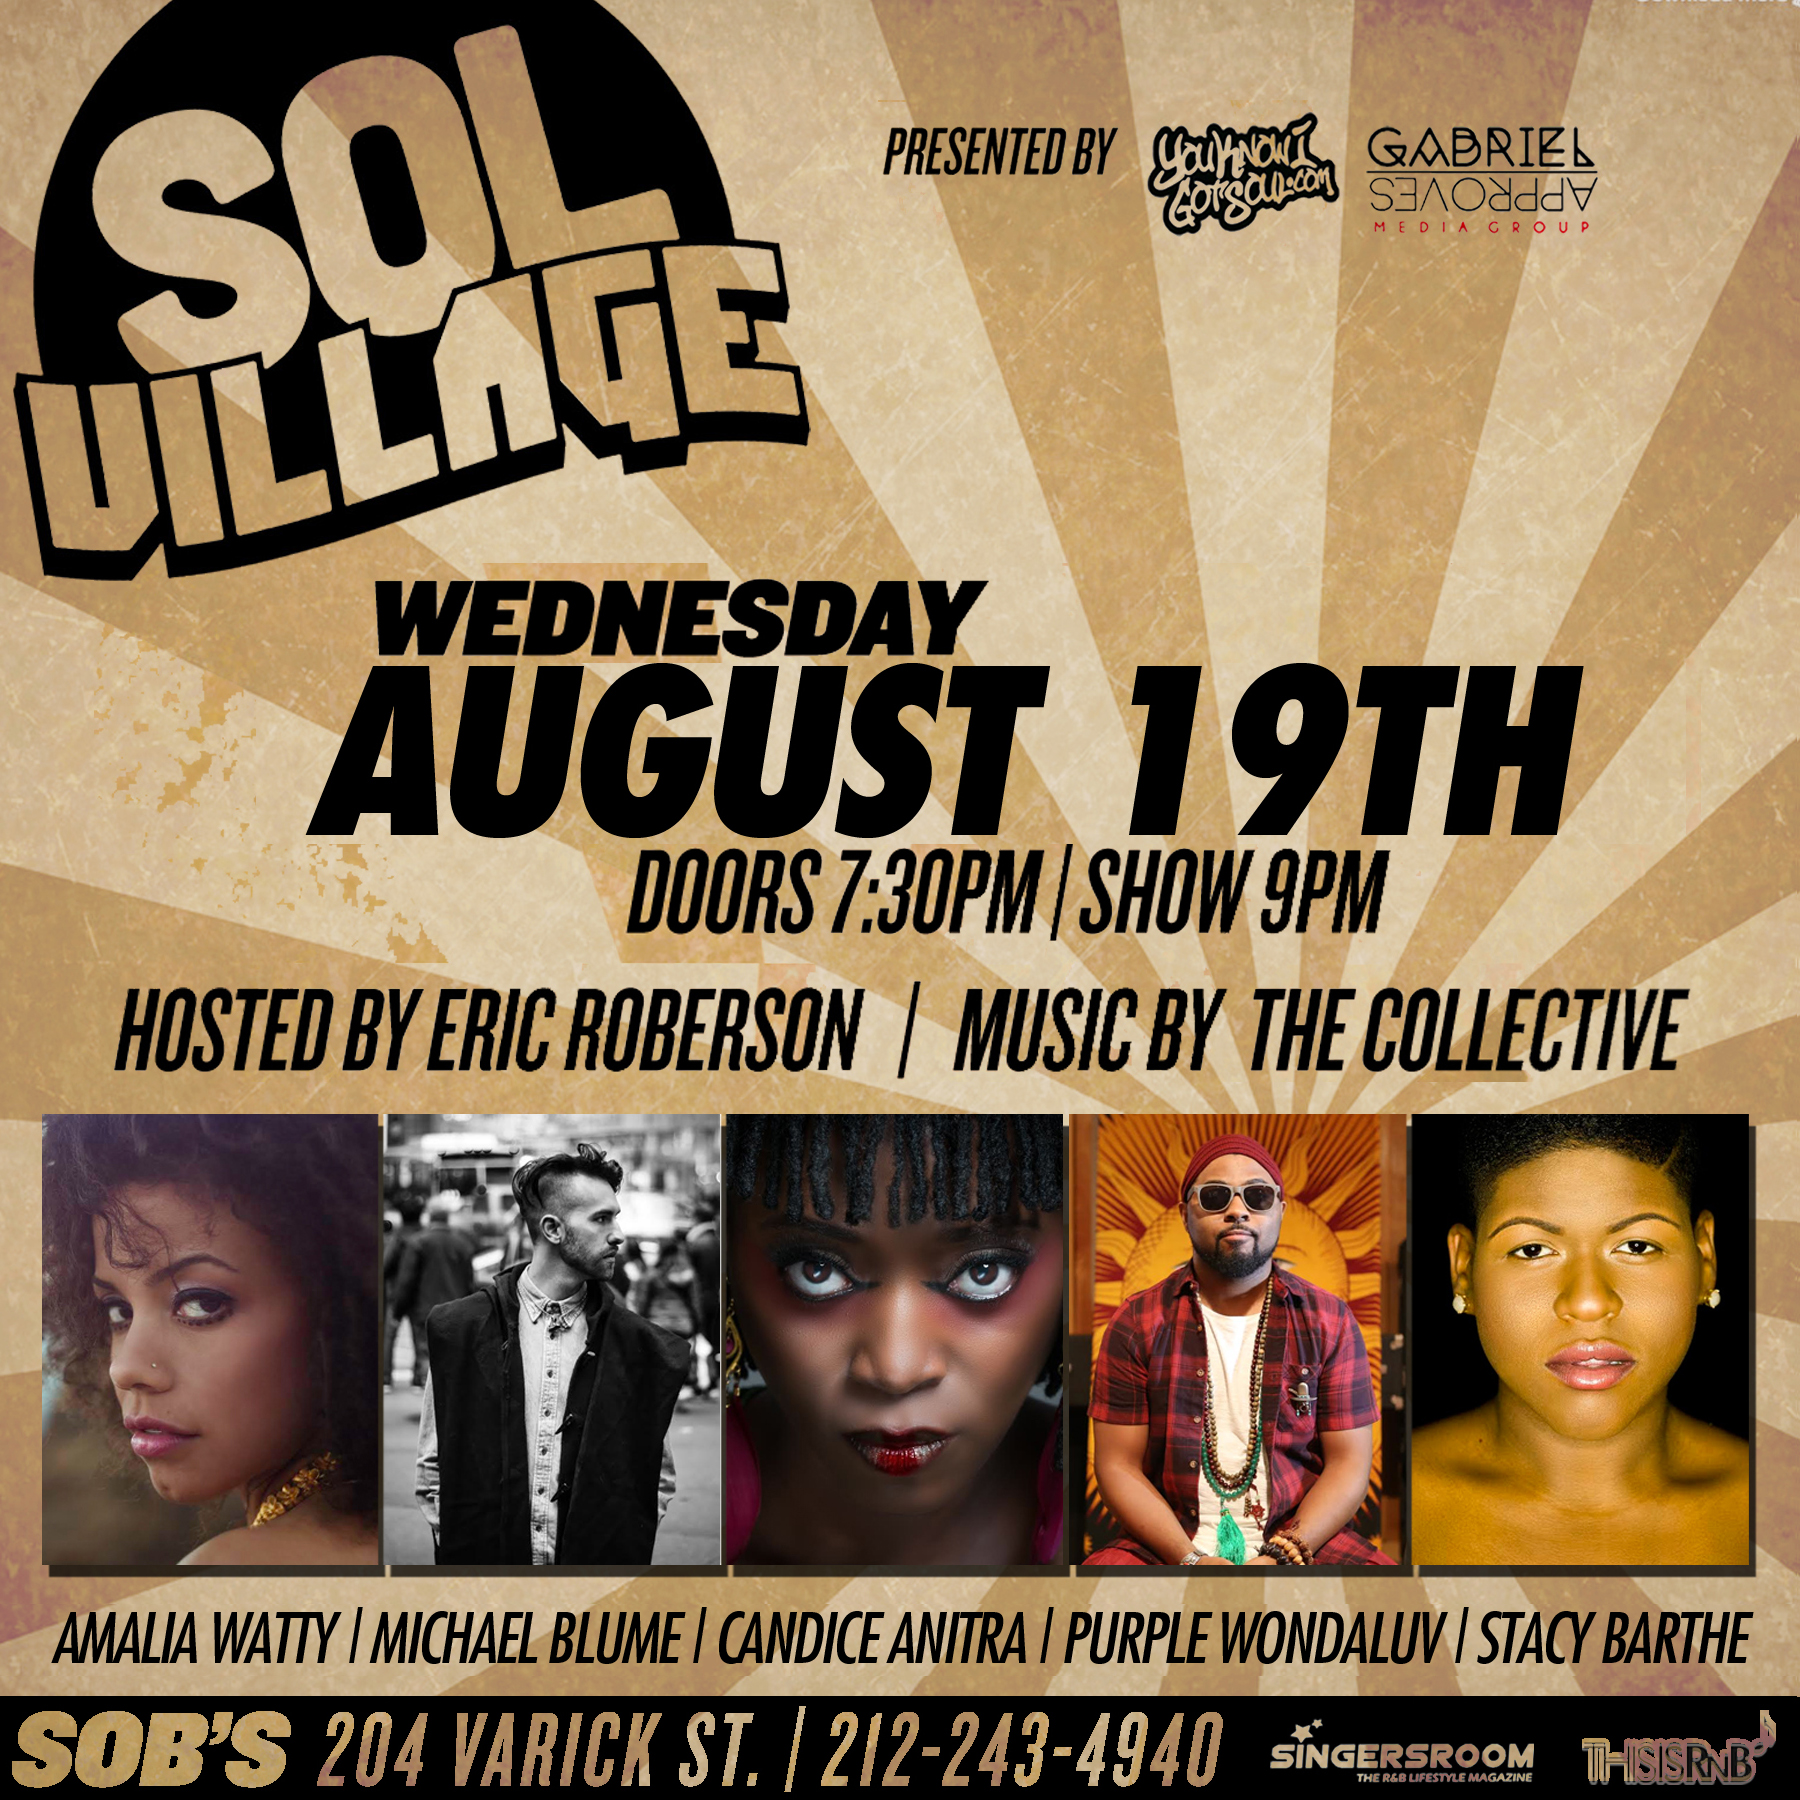 Musiq Soulchild's Persona Purple WondaLuv to Perform at August Edition of Sol Village